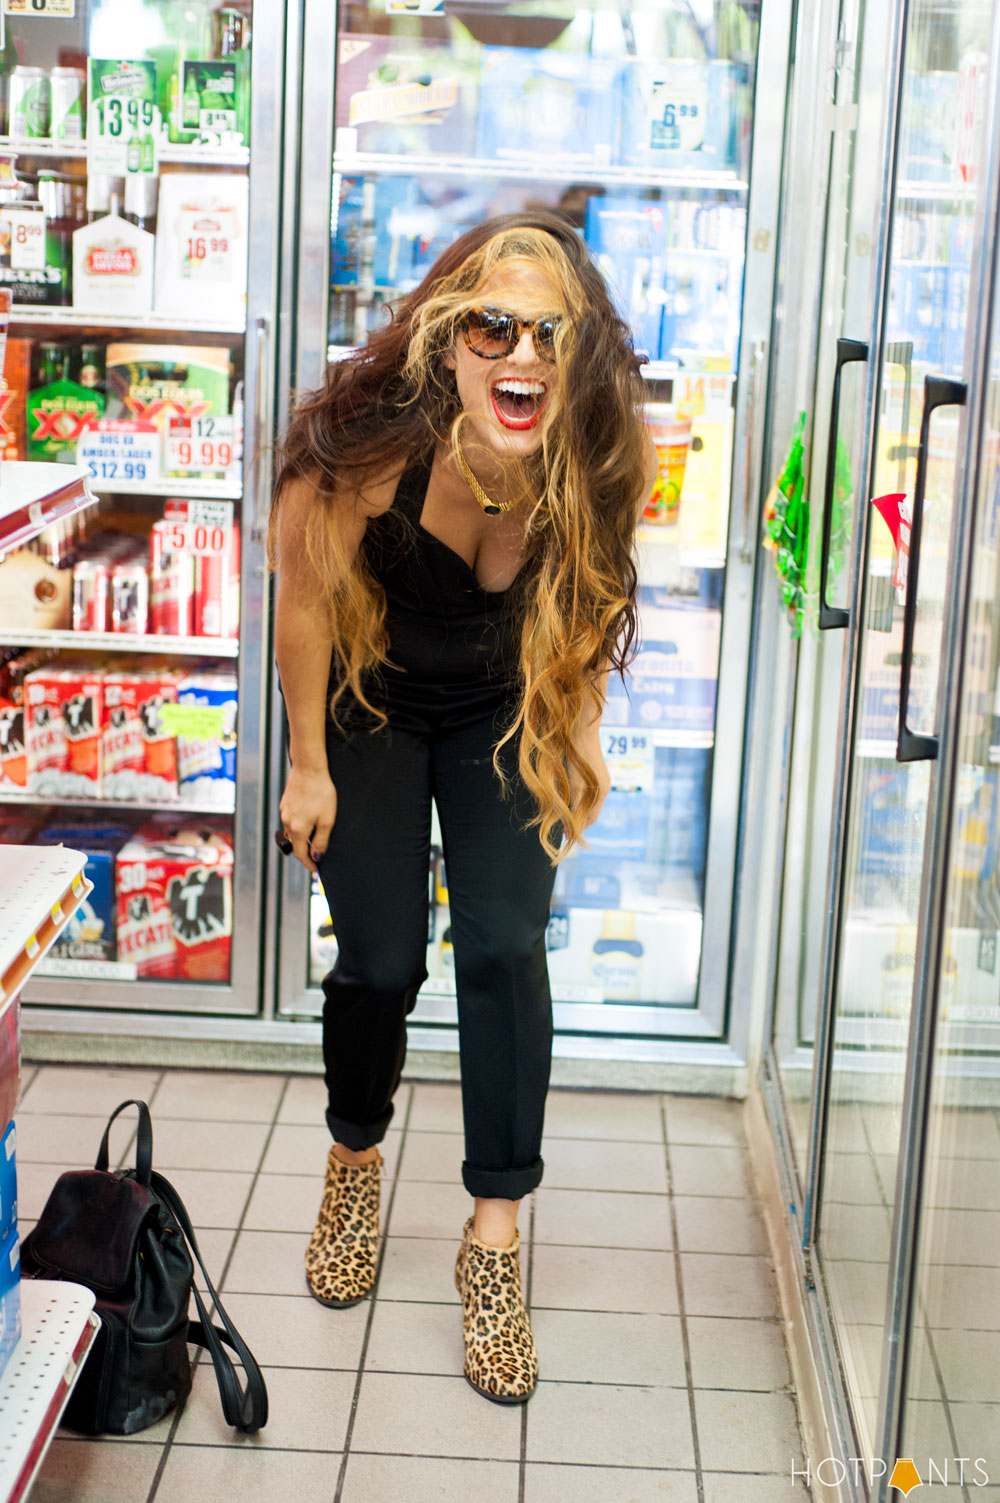 Girl Woman Funny Bodega Liquor Store Red Lipstick Leopard Print Sunglasses